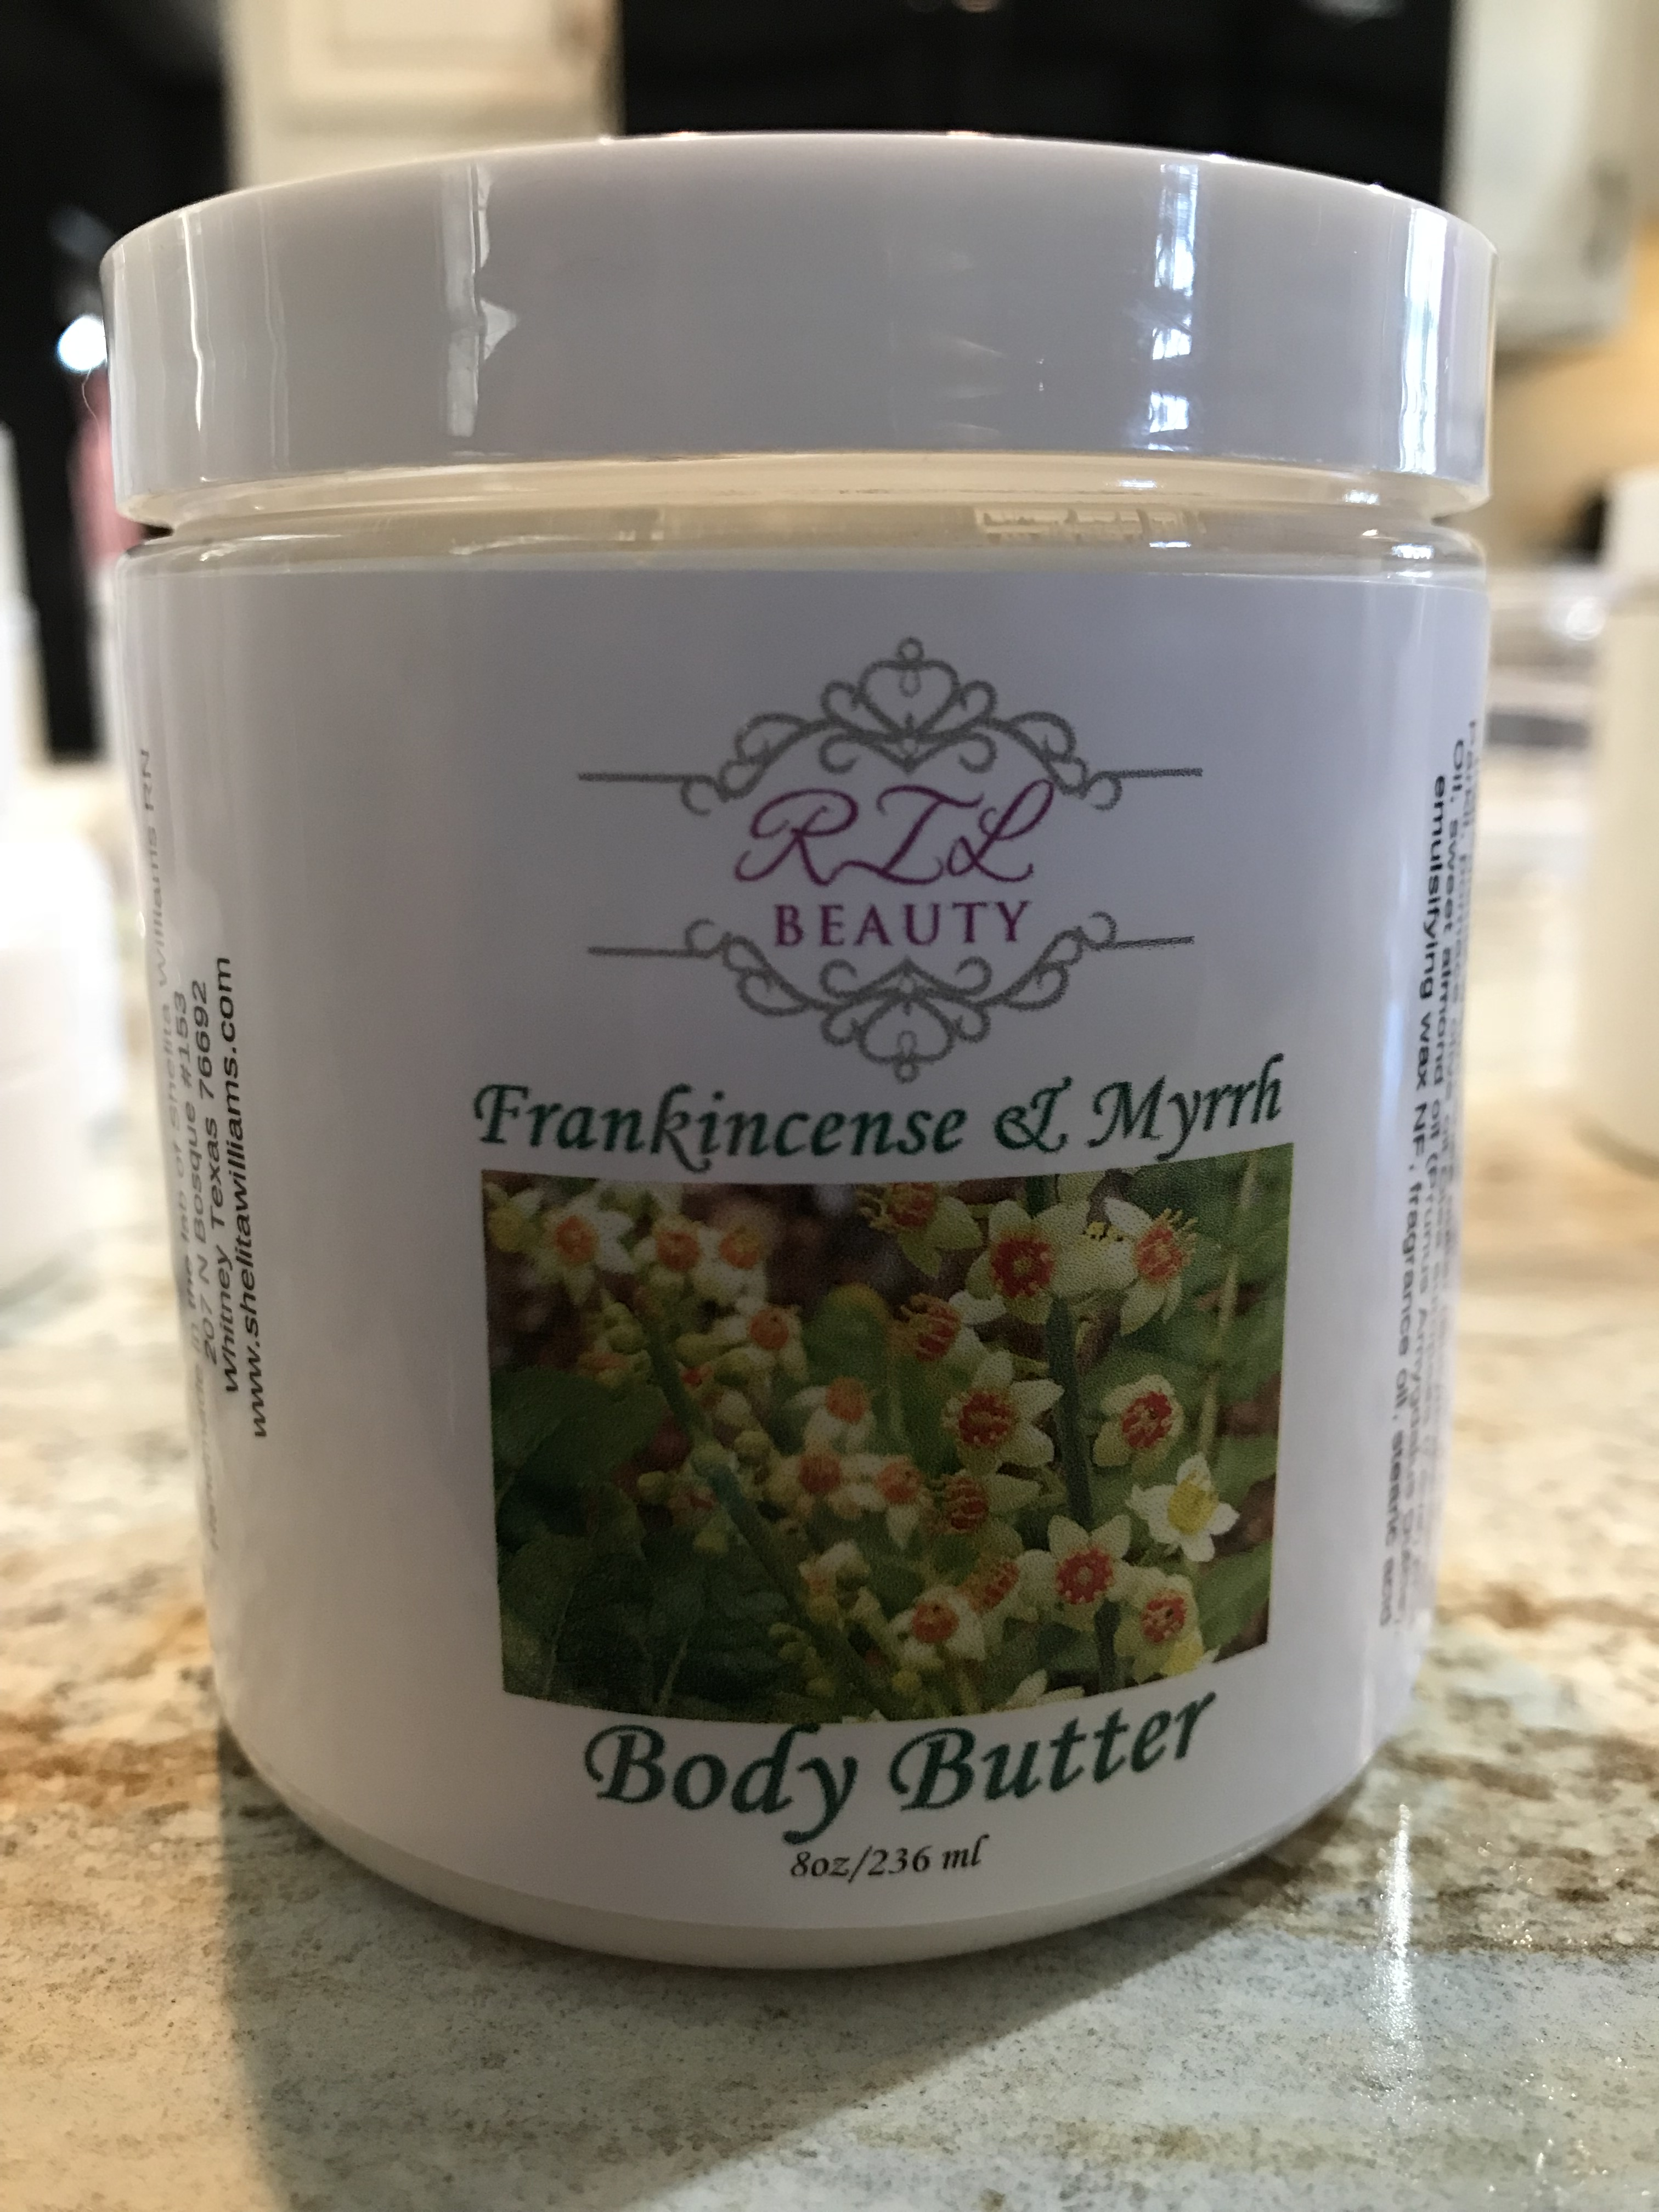 Frankincense & Myrrh 8oz. Body Butter